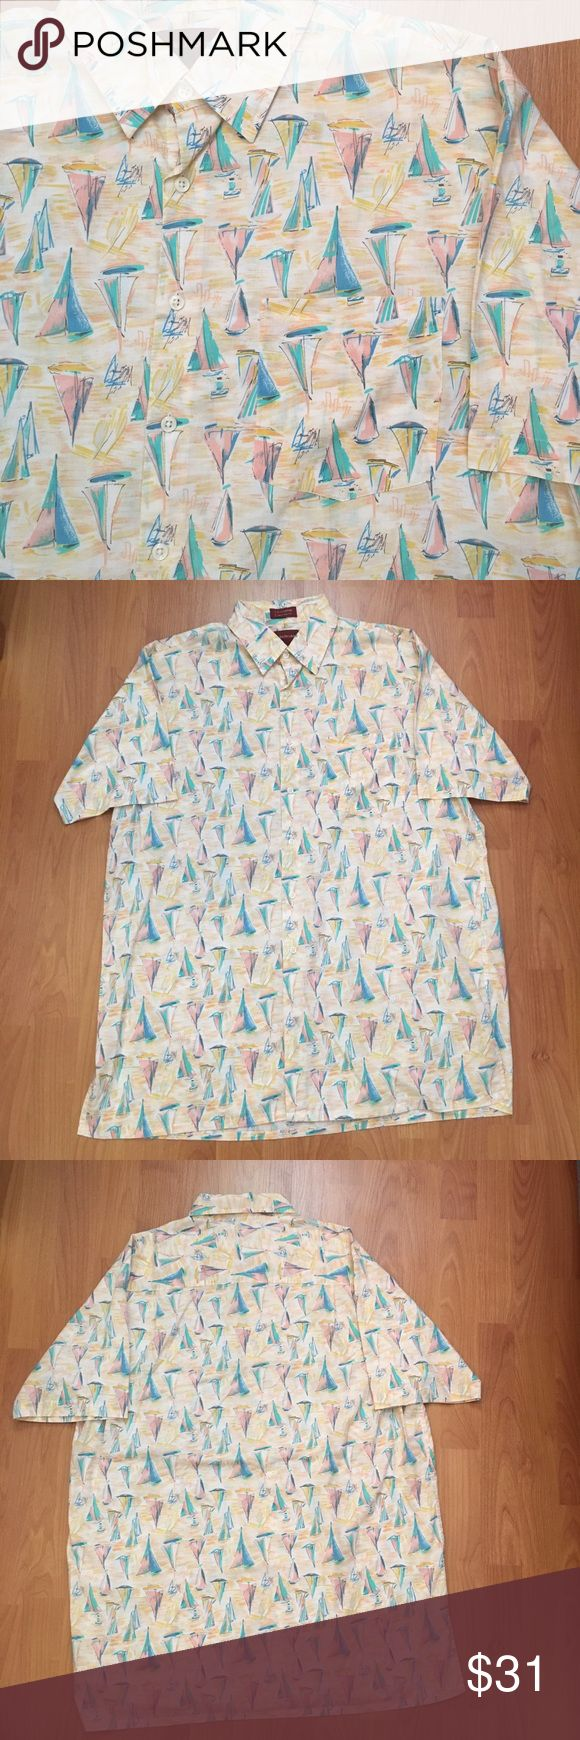 Vintage Chaps Ralph Lauren Pastel Sailboats Vintage Chaps Ralph Lauren Pastel Sailboats Button Down. One front pocket. Great vintage piece for the spring and summer. In perfect condition! Chaps Ralph Lauren  Shirts Casual Button Down Shirts